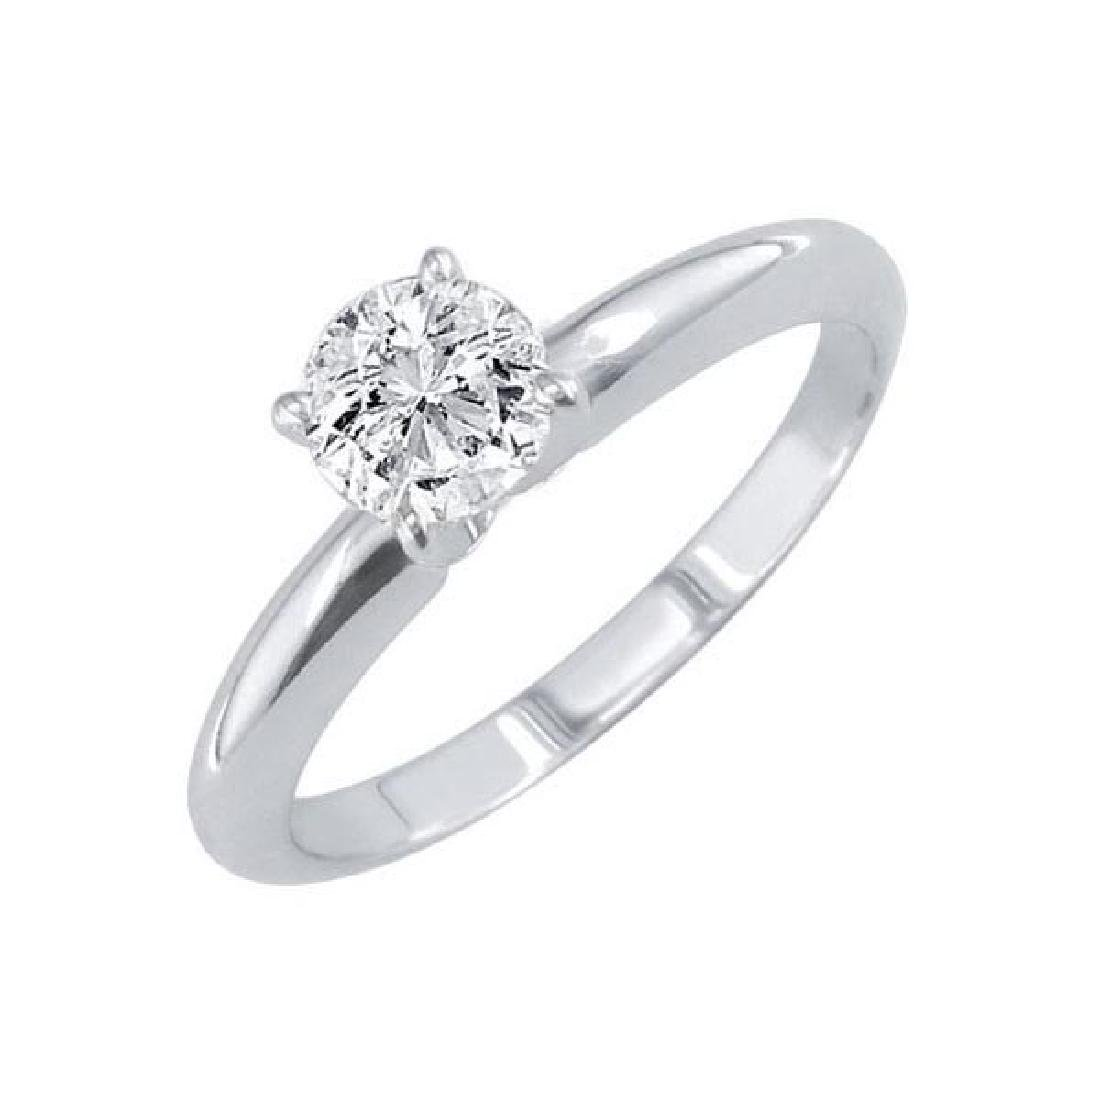 Certified 0.73 CTW Round Diamond Solitaire 14k Ring D/S